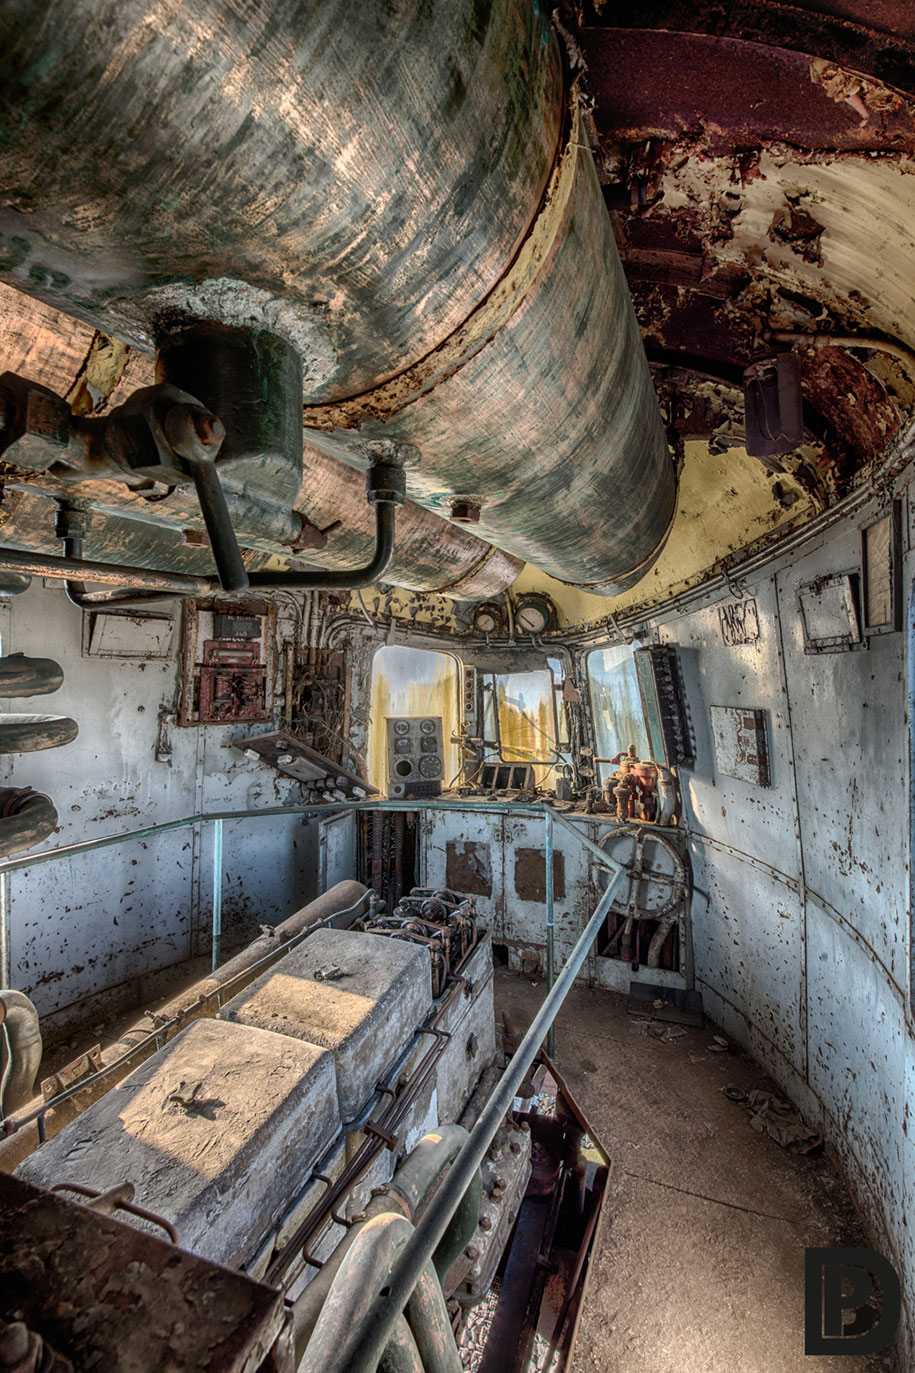 abandoned-train-orient-express-urban-exploration-brian-belgium-6